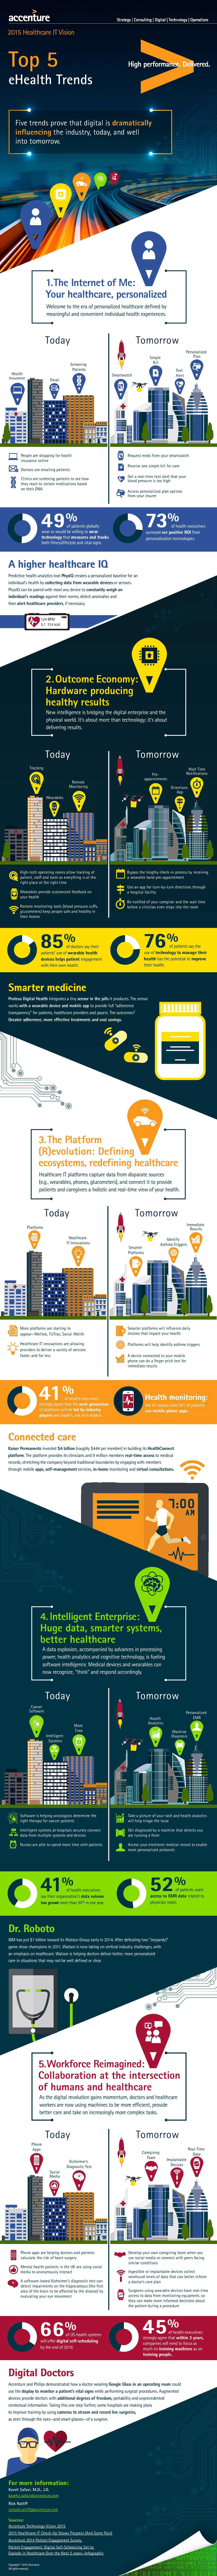 Healthcare_Technology_Vision_2015_Infographic-hospital-wireless-networks.jpg